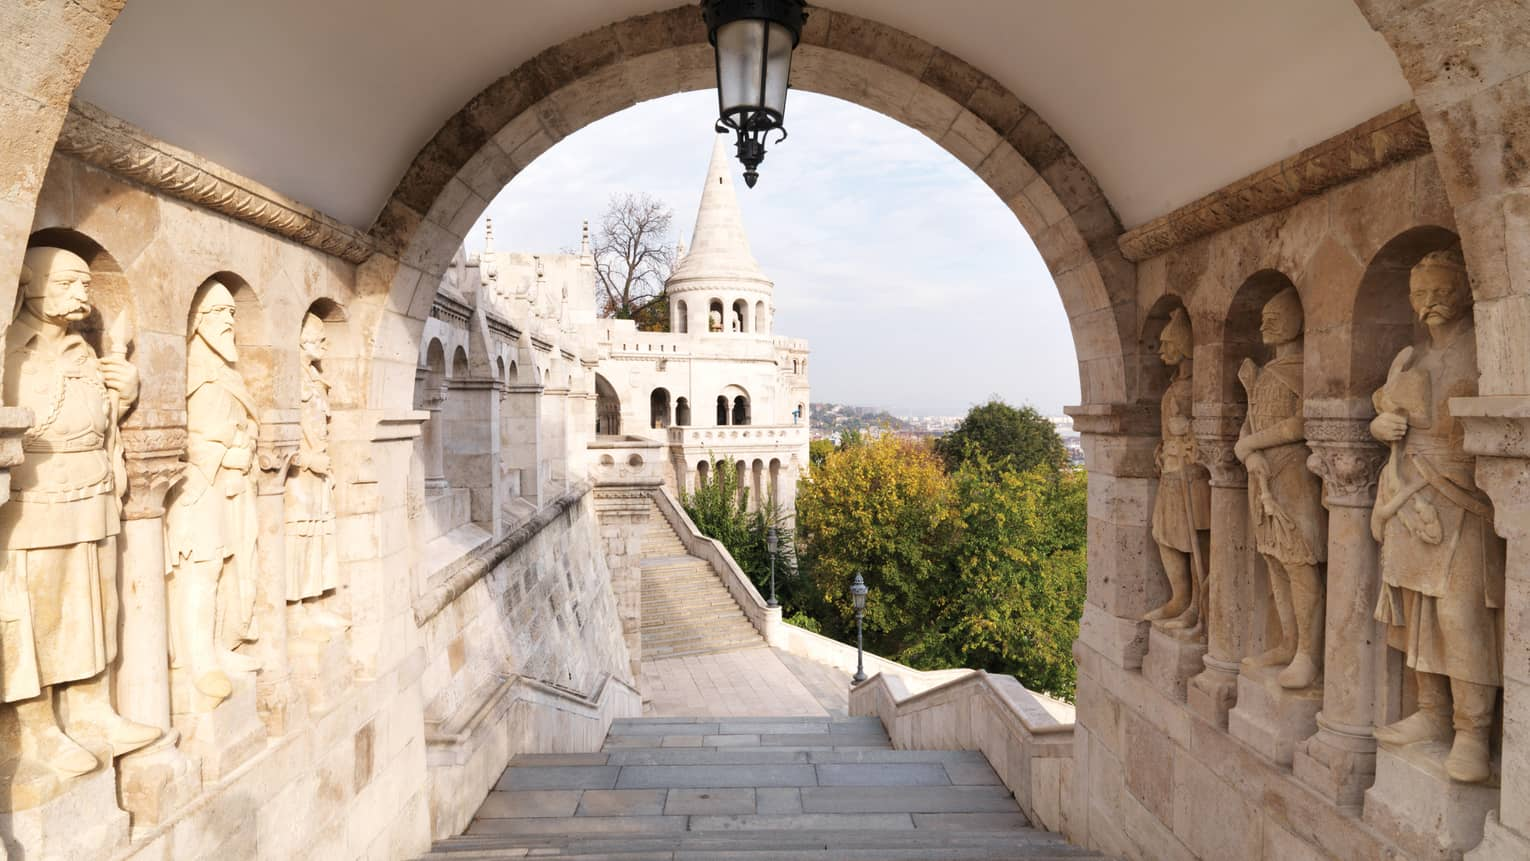 View down Fisherman's Bastion landmark stairs past stone carvings of statues in wall to castle-like turret